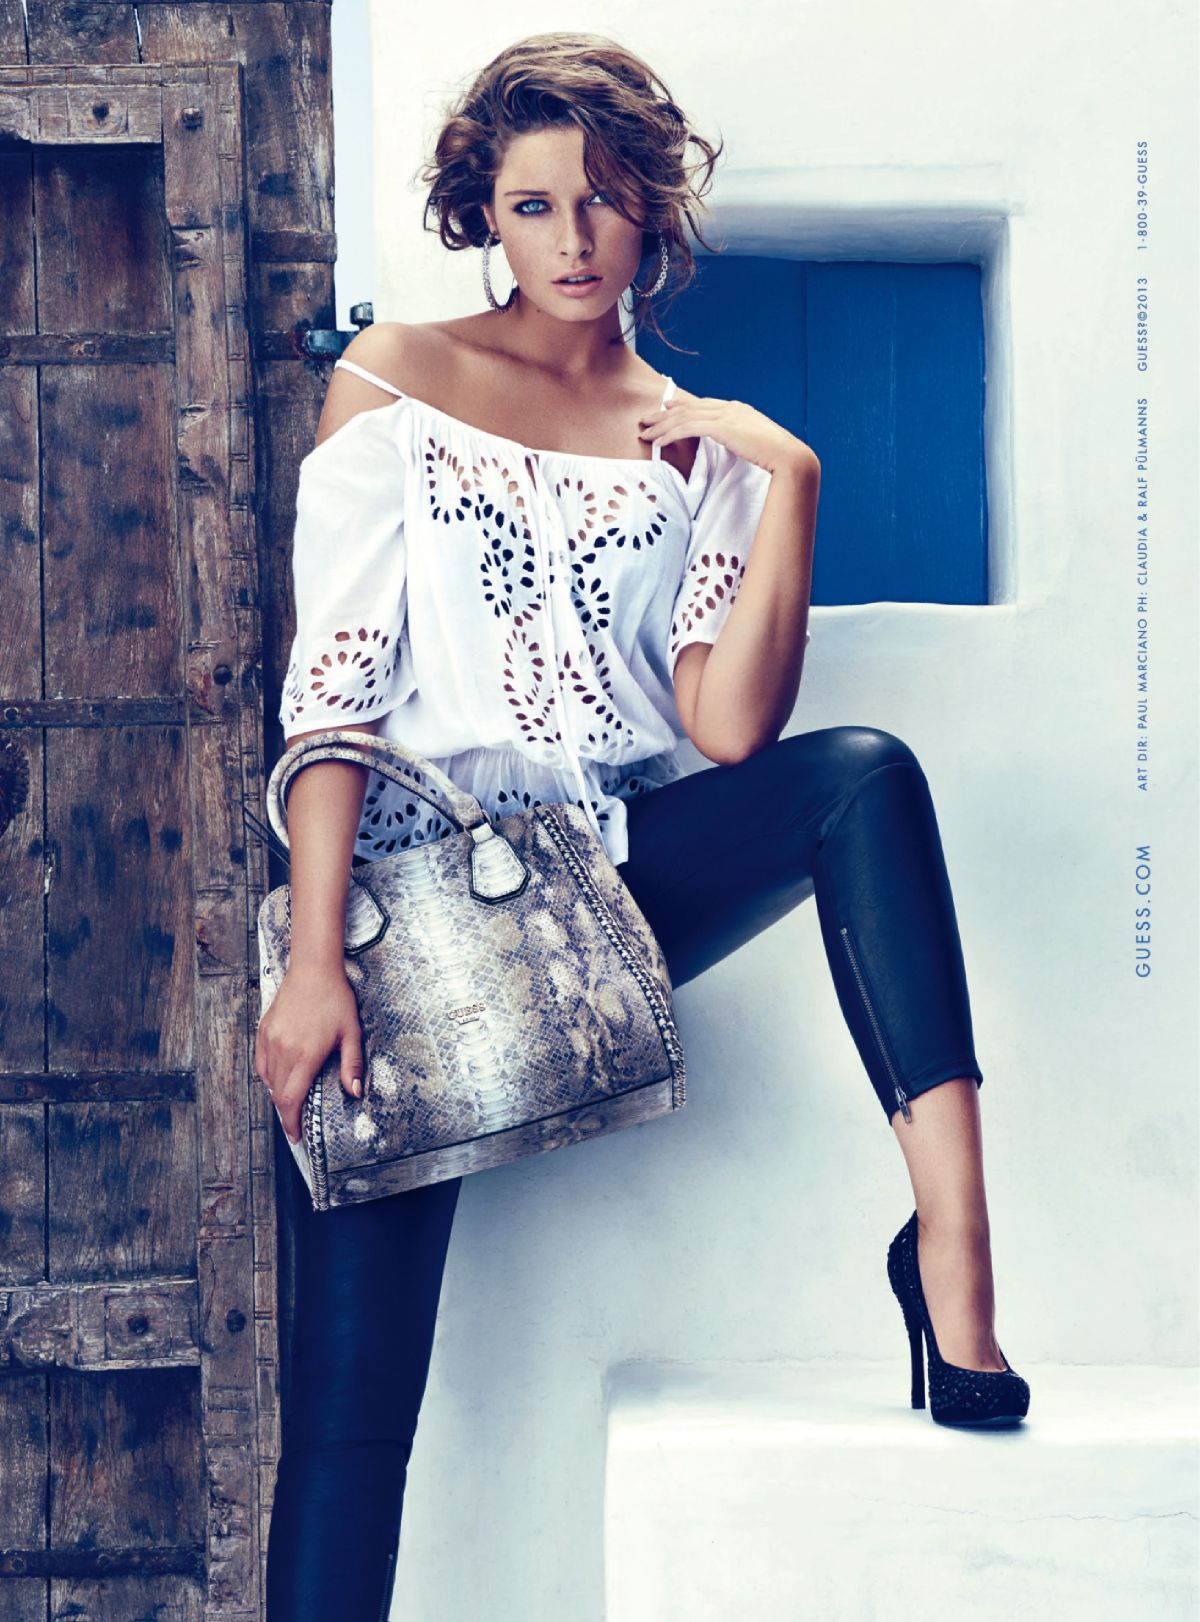 b834d8ae8e Sandrah Hellberg At Guess Accessories Ad Campaign Fall Winter 2013 ...